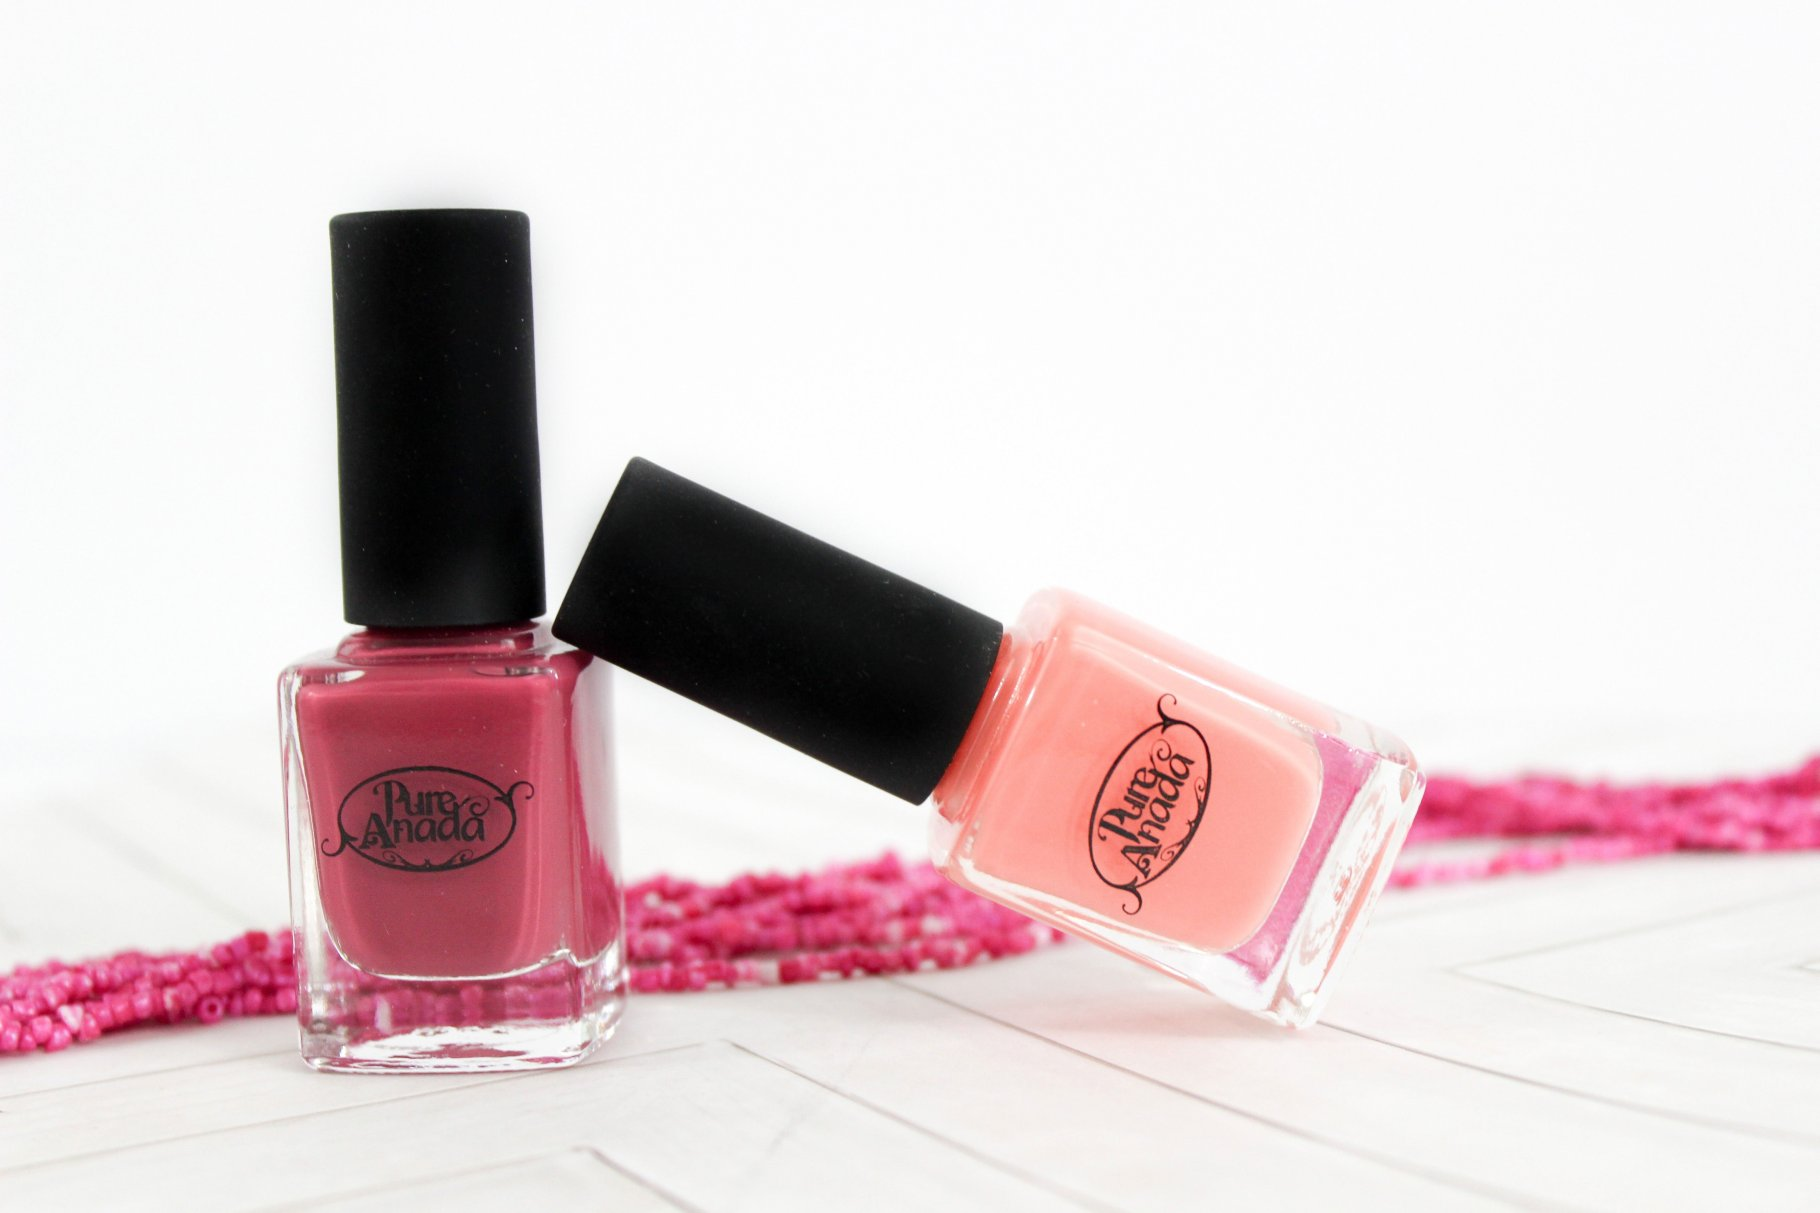 Pure Anada Five-Free Nail Polish | Review